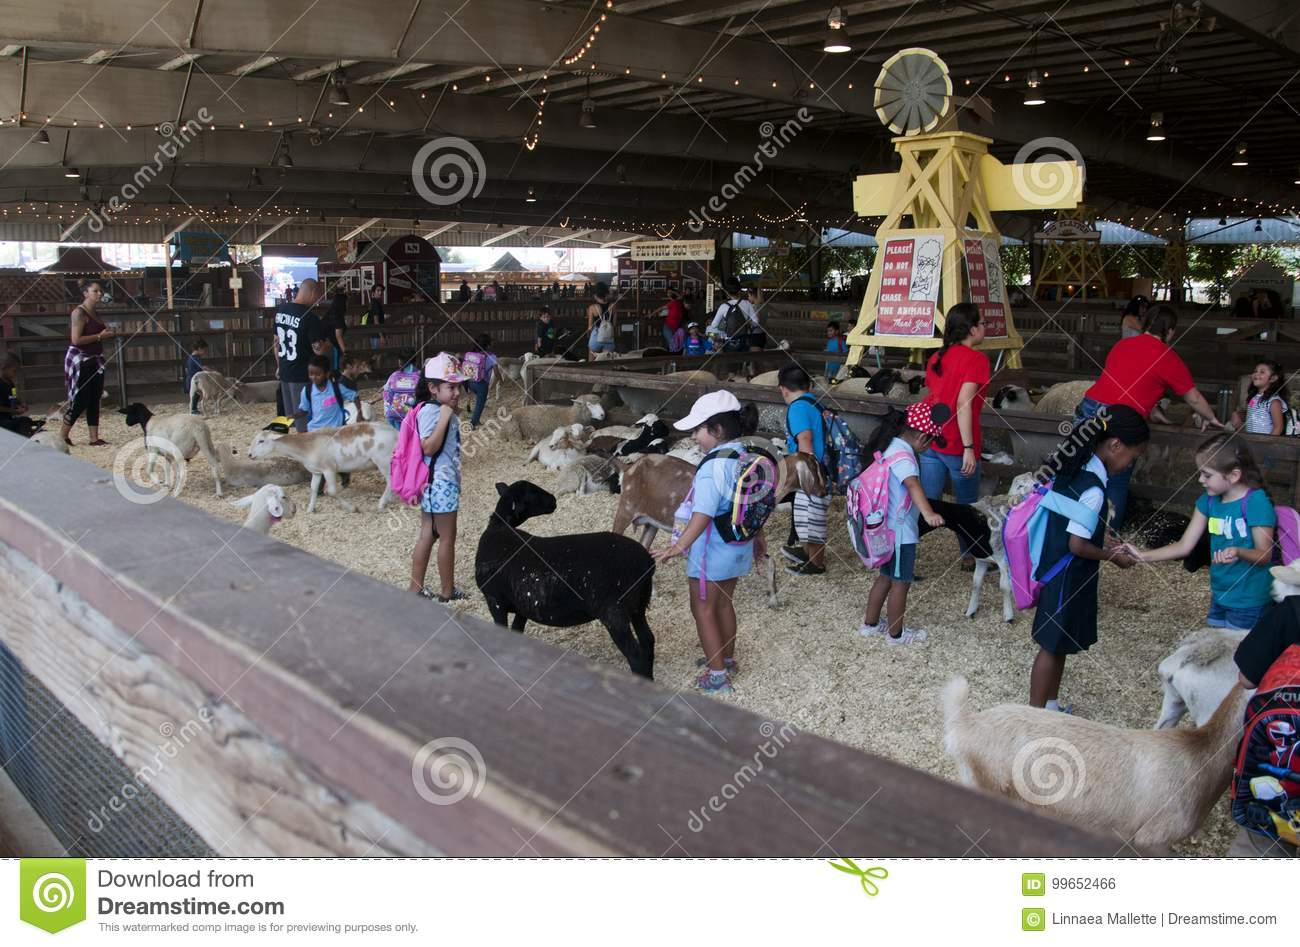 Sheep and goats at Petting Zoo exhibit at the Los Angeles County Fair in Pomona